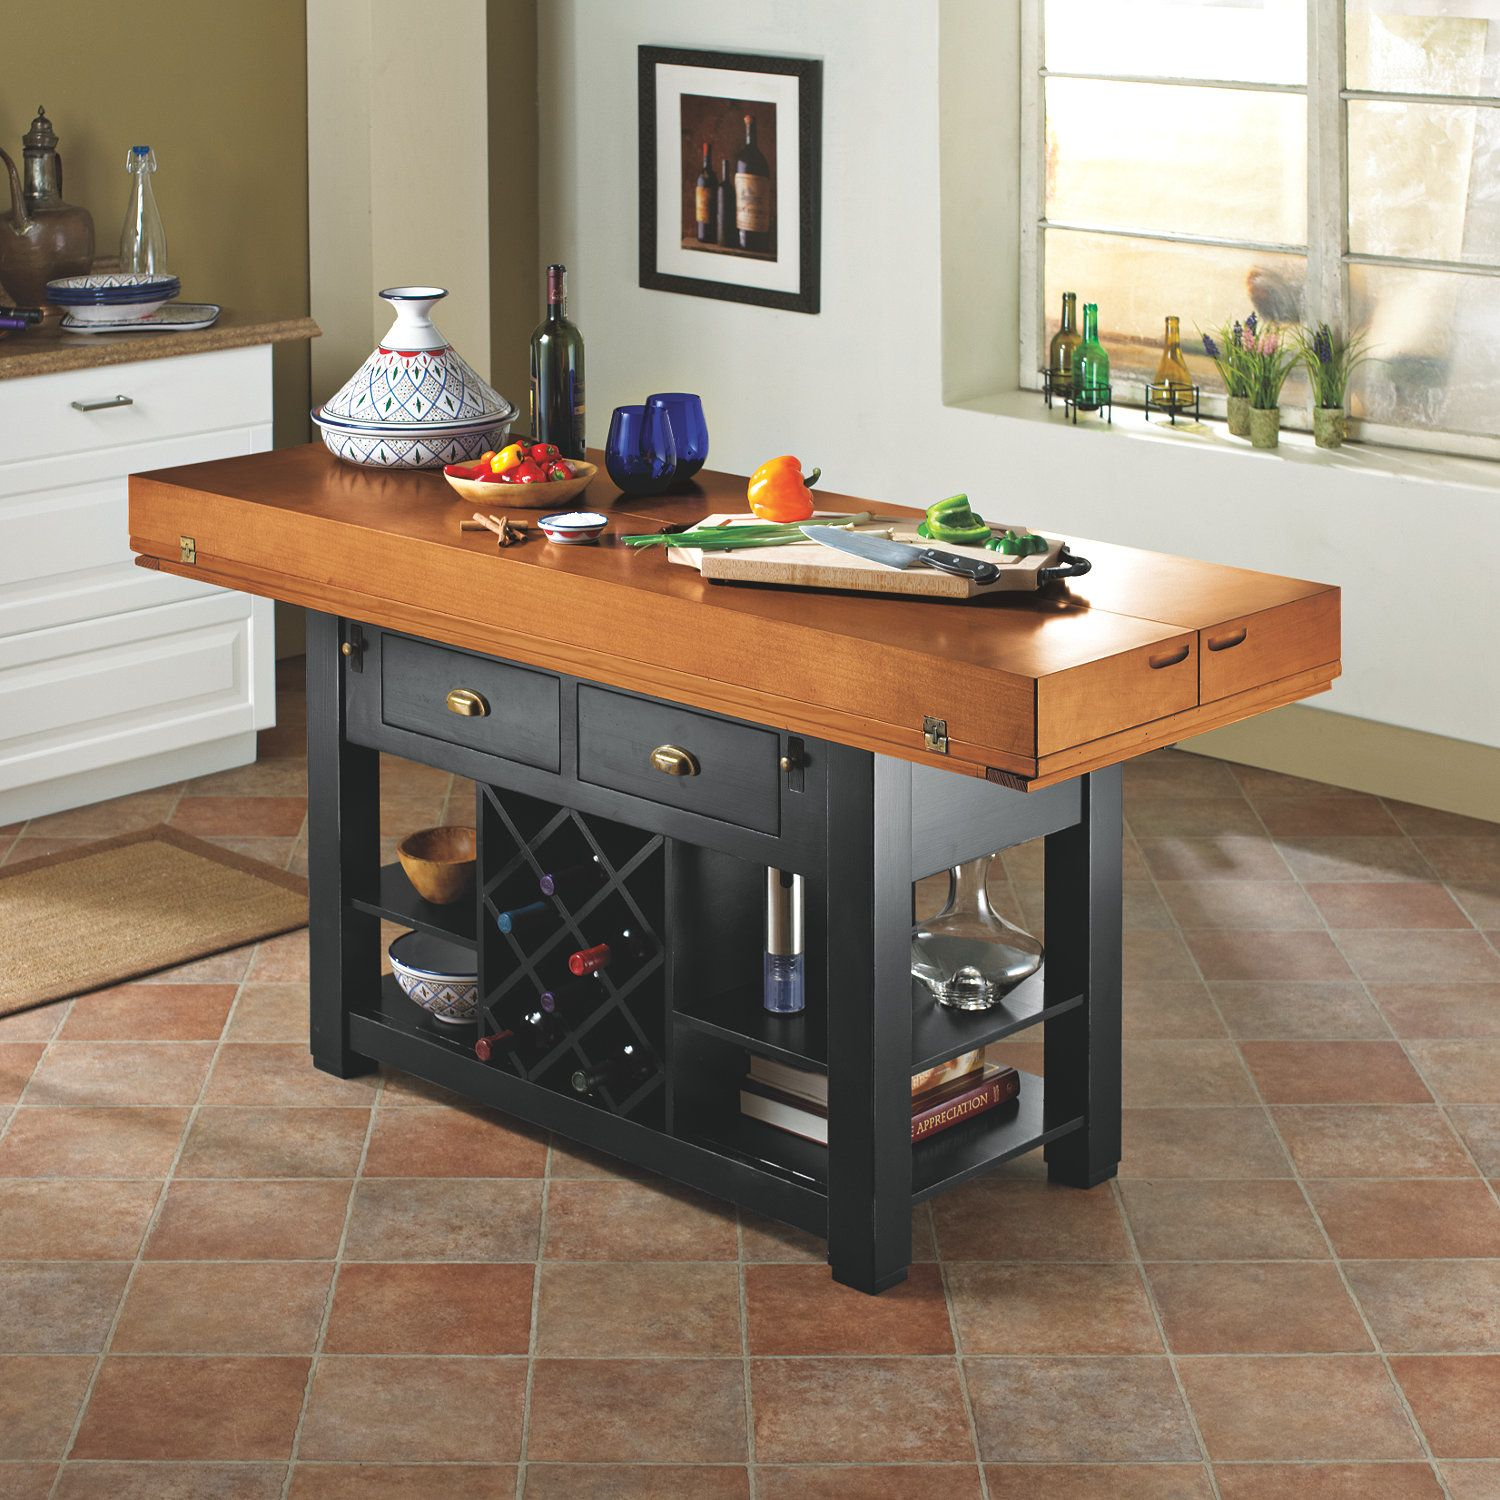 Kitchen Prep Table Cutler And Bath Vanity Small Tables With Wine Storage Island